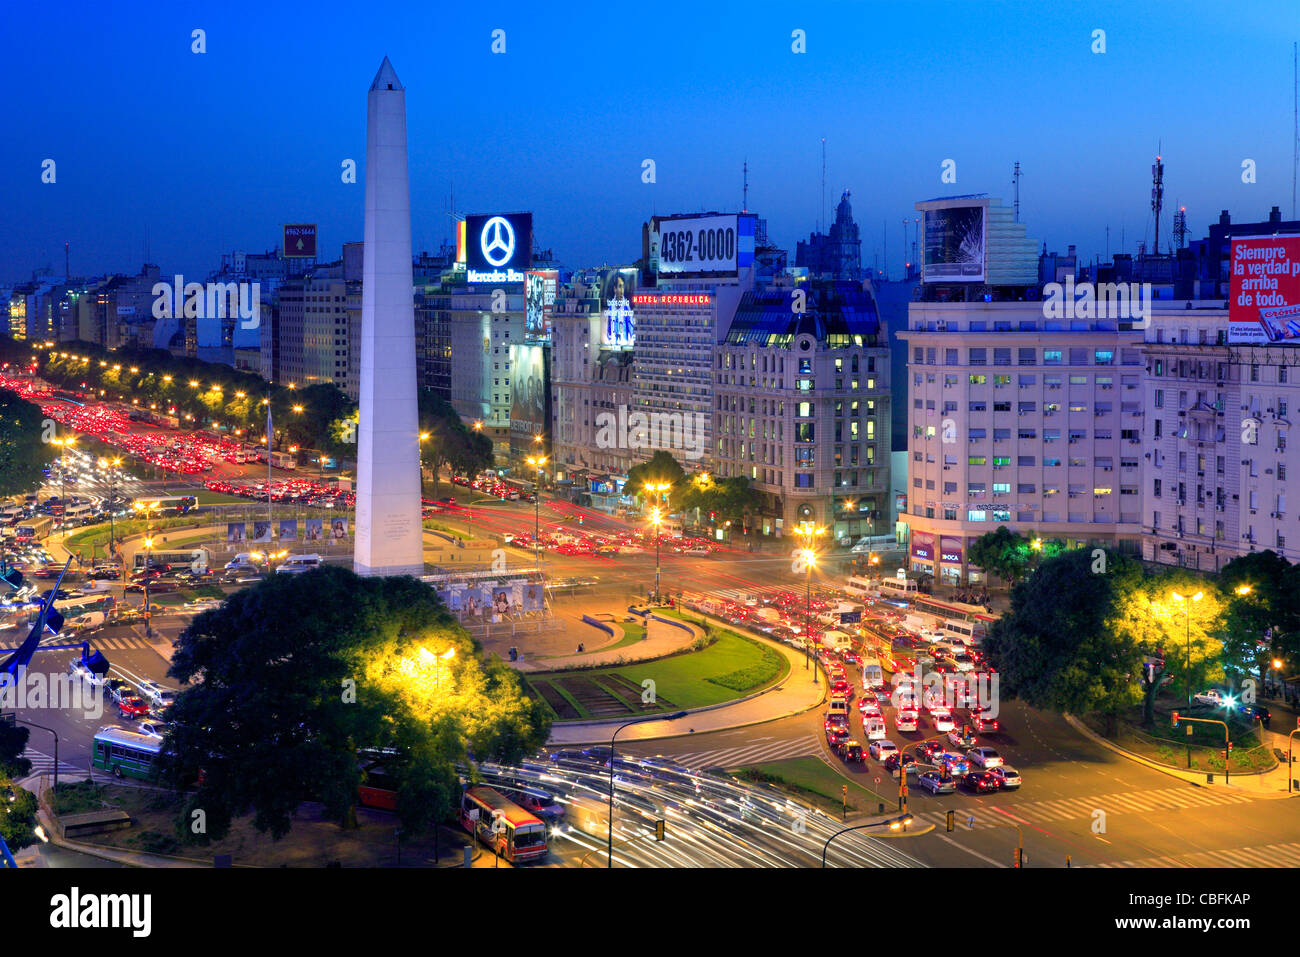 9 de Julio Ave. aerial view, and Obelisk (obelisco) and car lights traces, at twilight. Buenos Aires, Argentina, - Stock Image